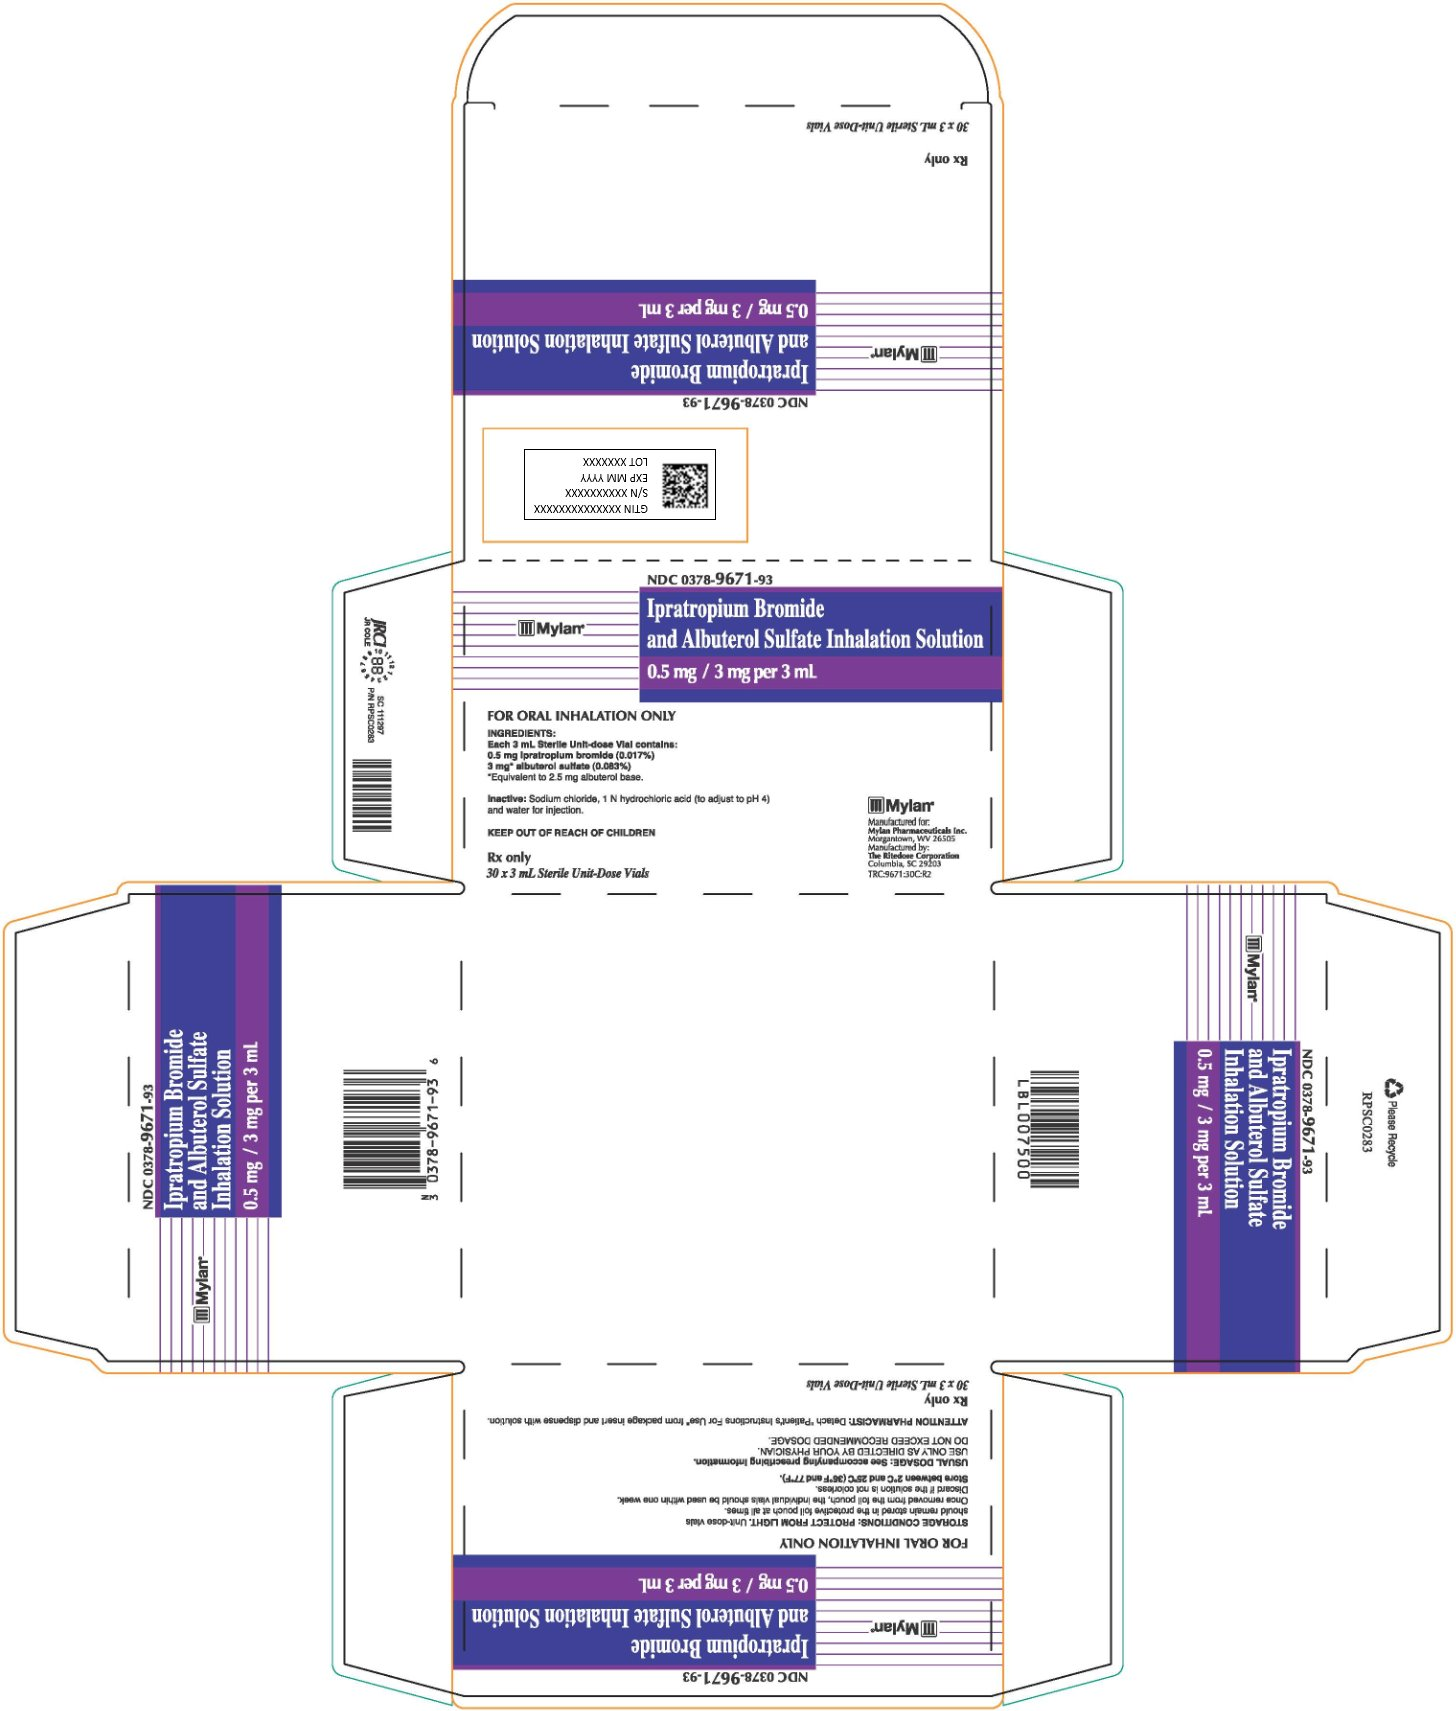 Ipratropium Bromide and Albuterol Sulfate Inhalation Solution Carton Label